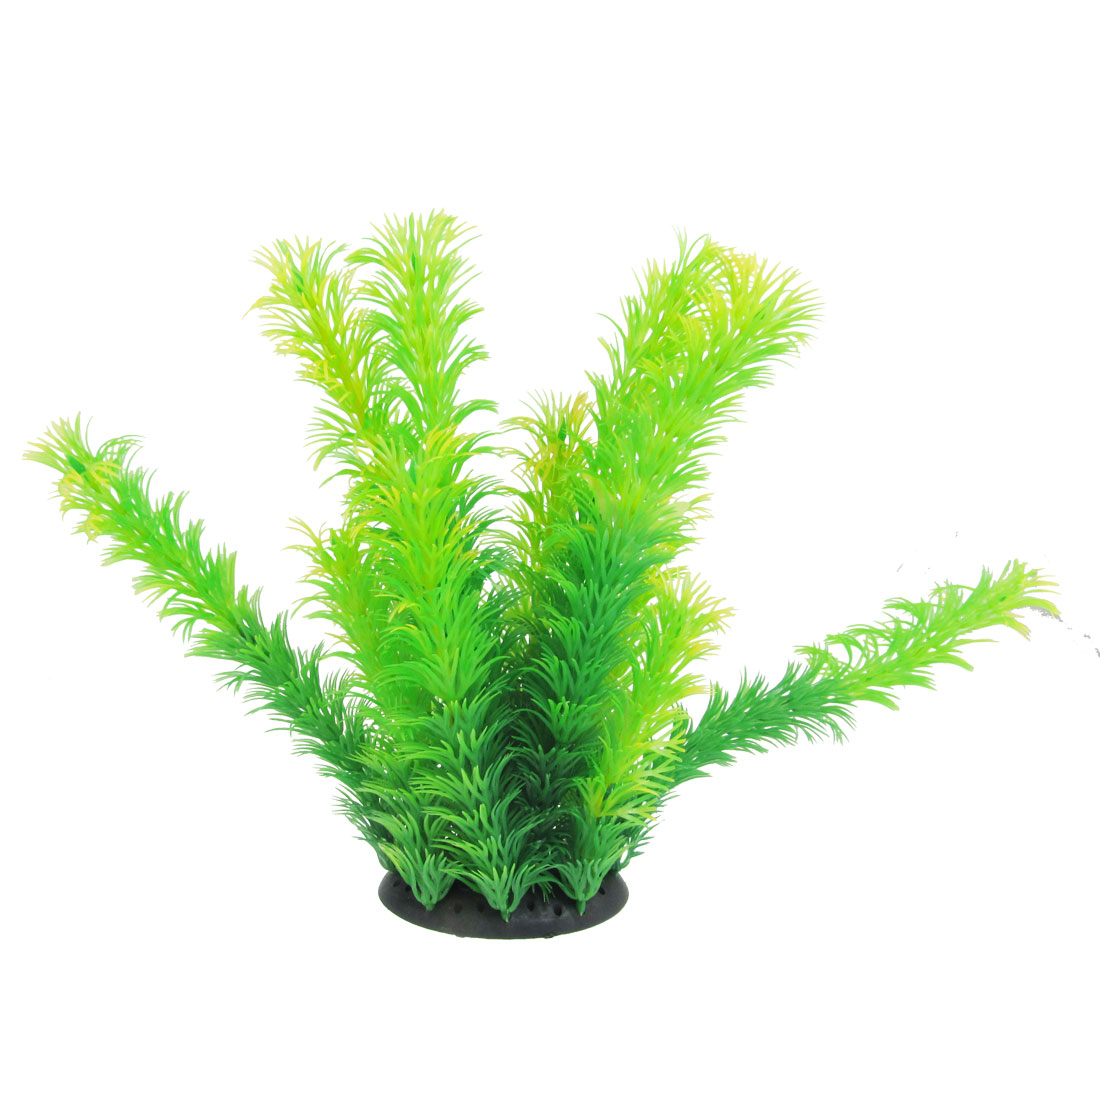 Fish Tank Aquarium Aquascaping Green Plastic Simulation Plant 7.1""